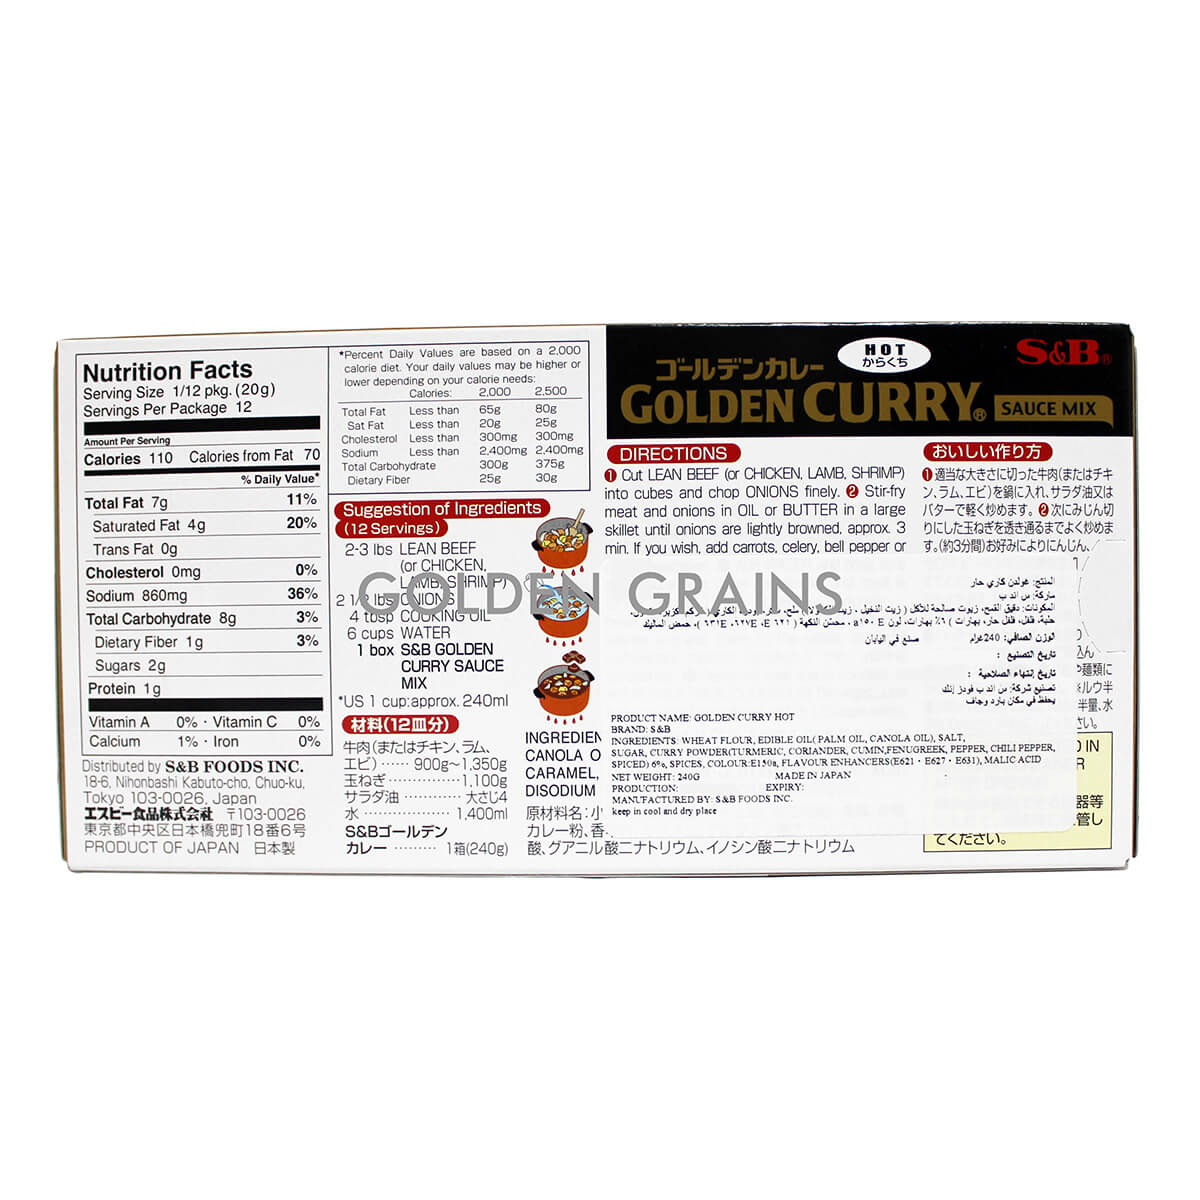 Golden Grains Dubai Export - S&B - Golden Curry - Back.jpg